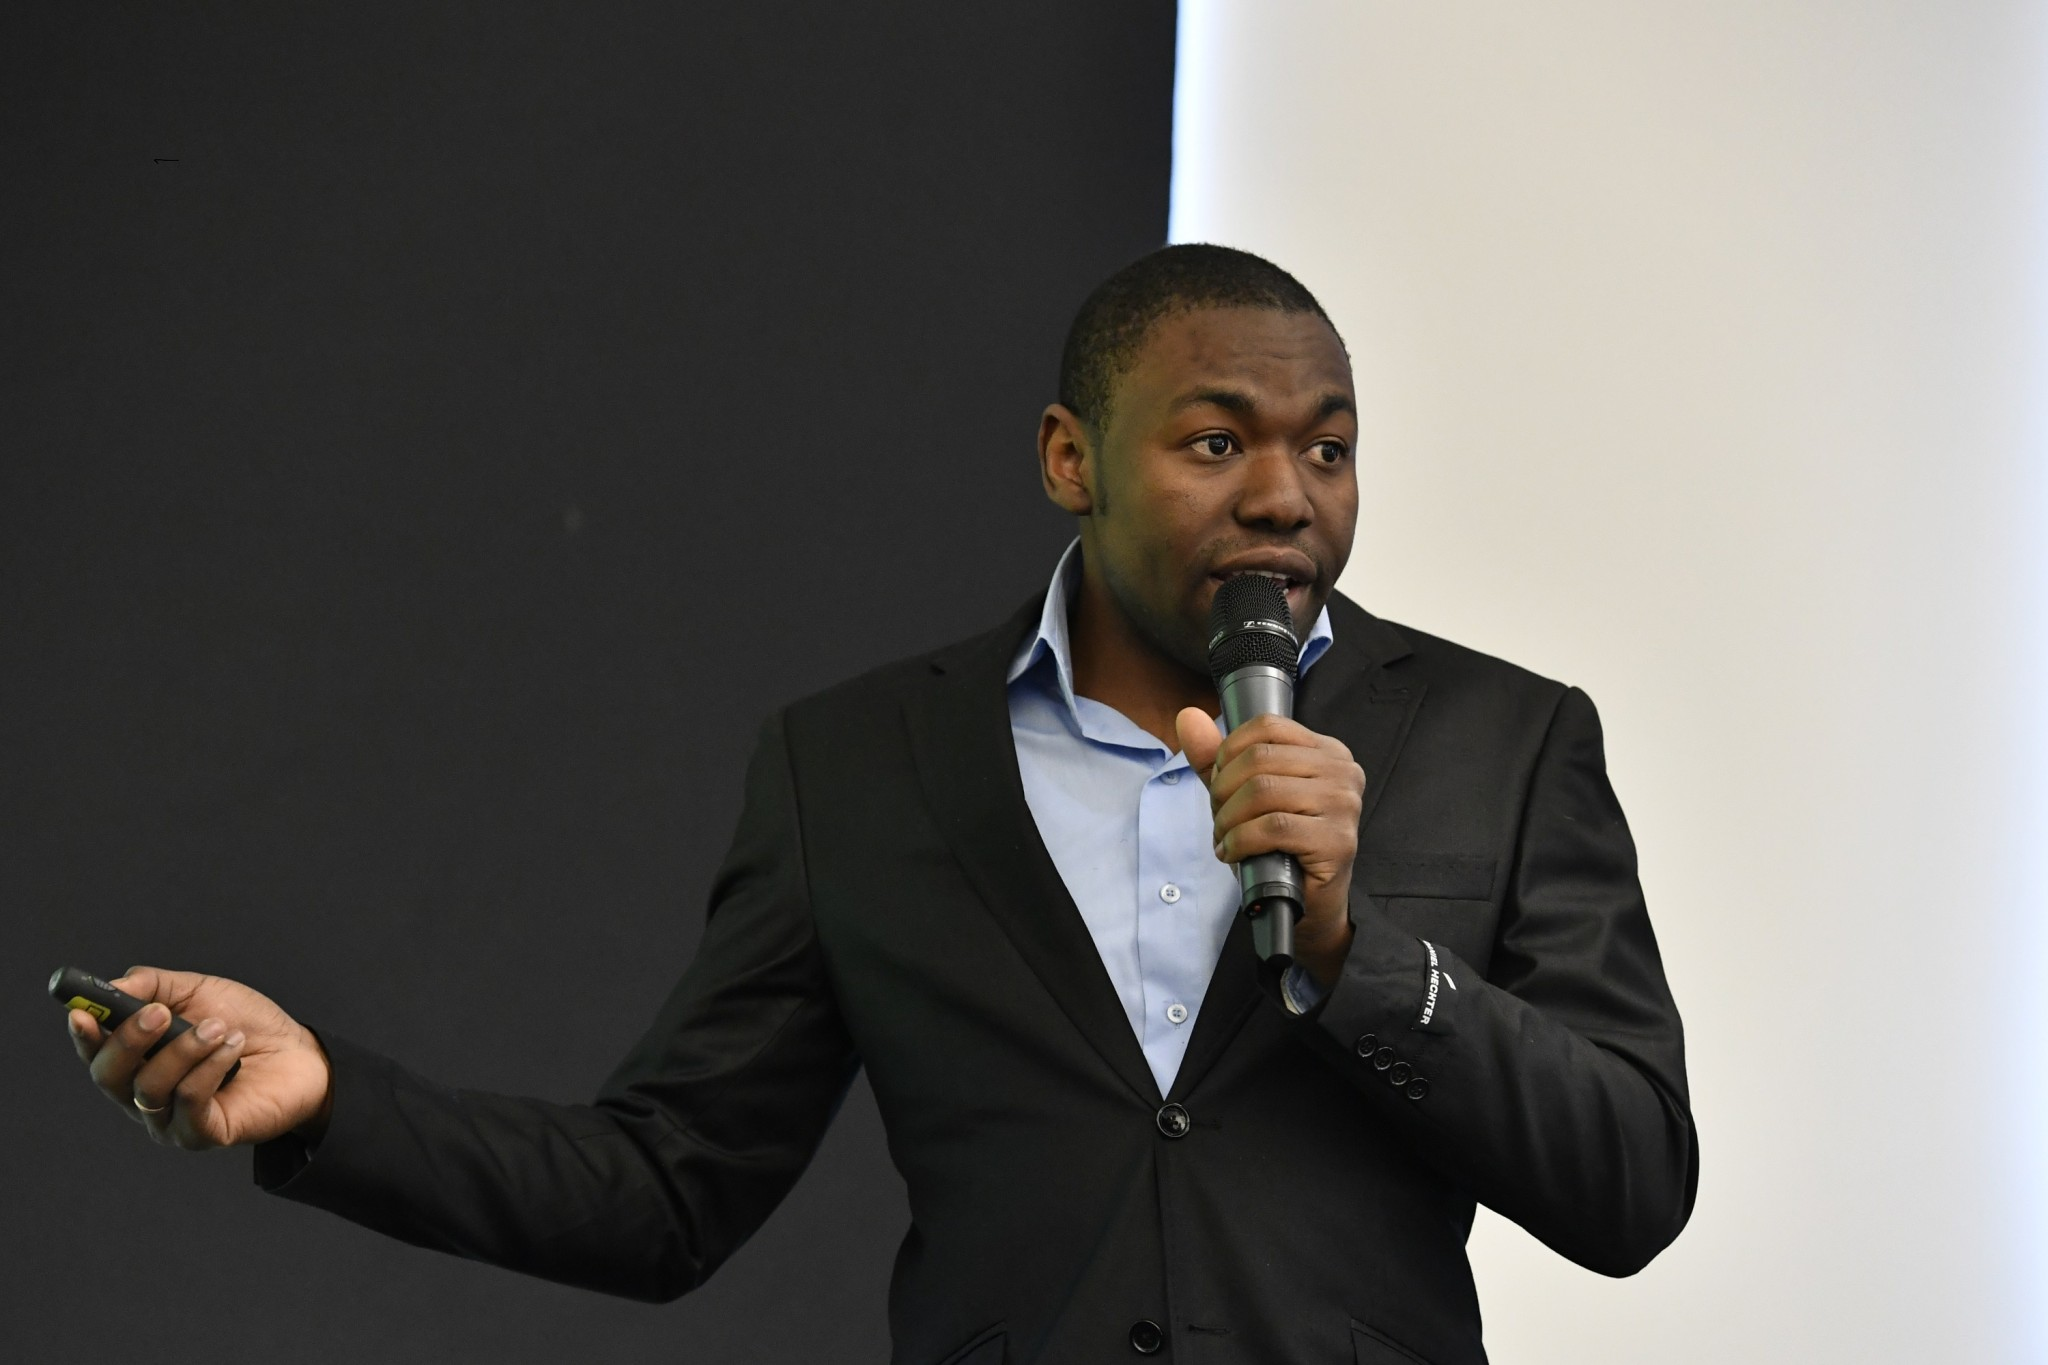 Skoltech's Daniel Kekere presents his team's project the UTM DRONMAP, a project dedicated to the development of a commercial grade drone traffic management system. Photo: Skoltech.